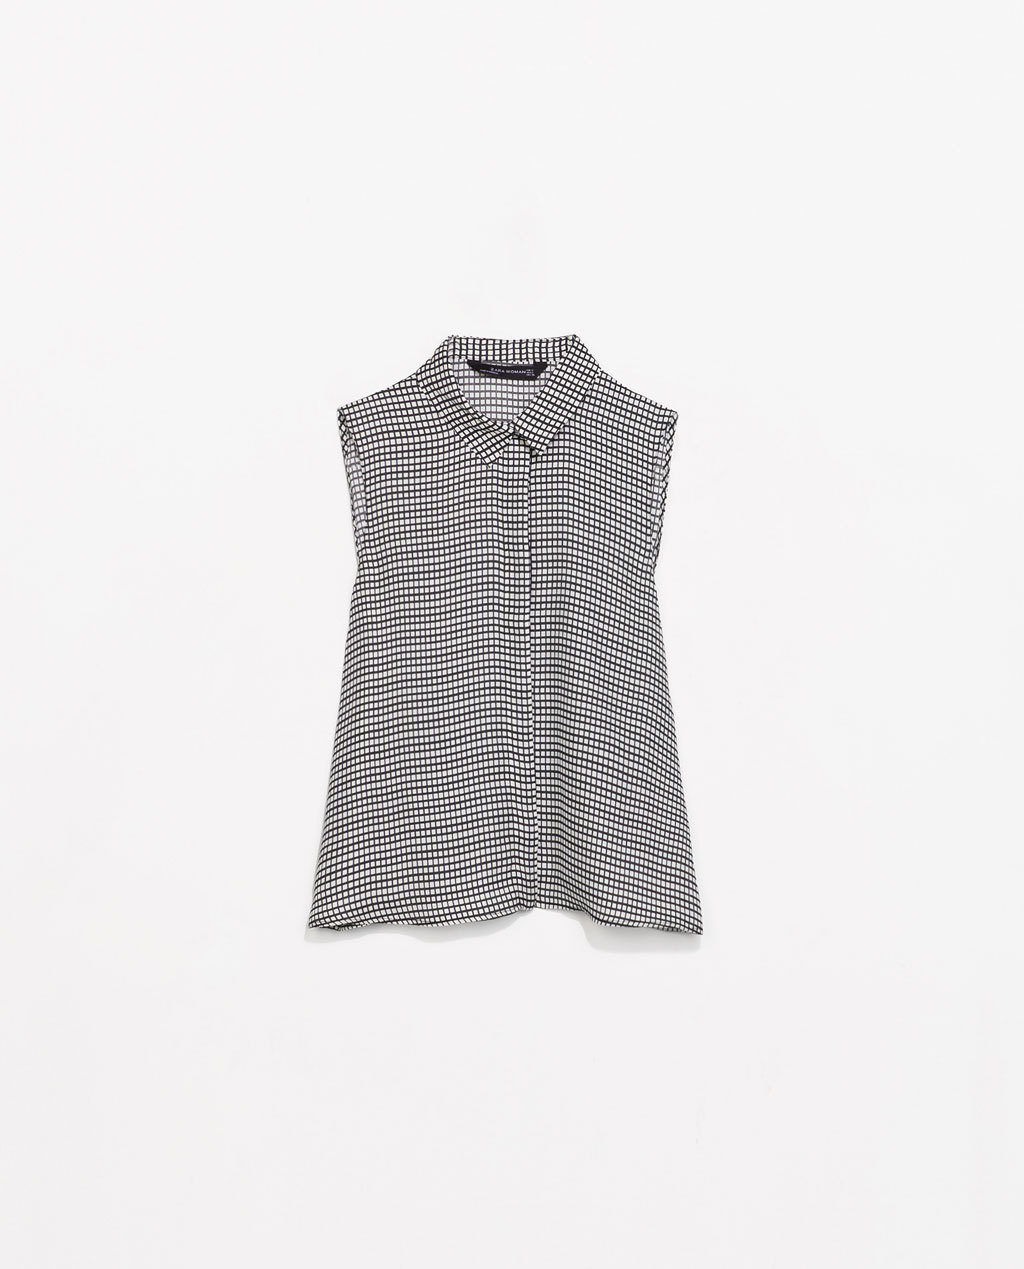 Printed Shirt With Collar - neckline: shirt collar/peter pan/zip with opening; sleeve style: sleeveless; pattern: checked/gingham; style: shirt; secondary colour: ivory/cream; predominant colour: black; occasions: casual, creative work; length: standard; fibres: polyester/polyamide - 100%; fit: straight cut; sleeve length: sleeveless; pattern type: fabric; pattern size: standard; texture group: other - light to midweight; season: s/s 2014; trends: monochrome